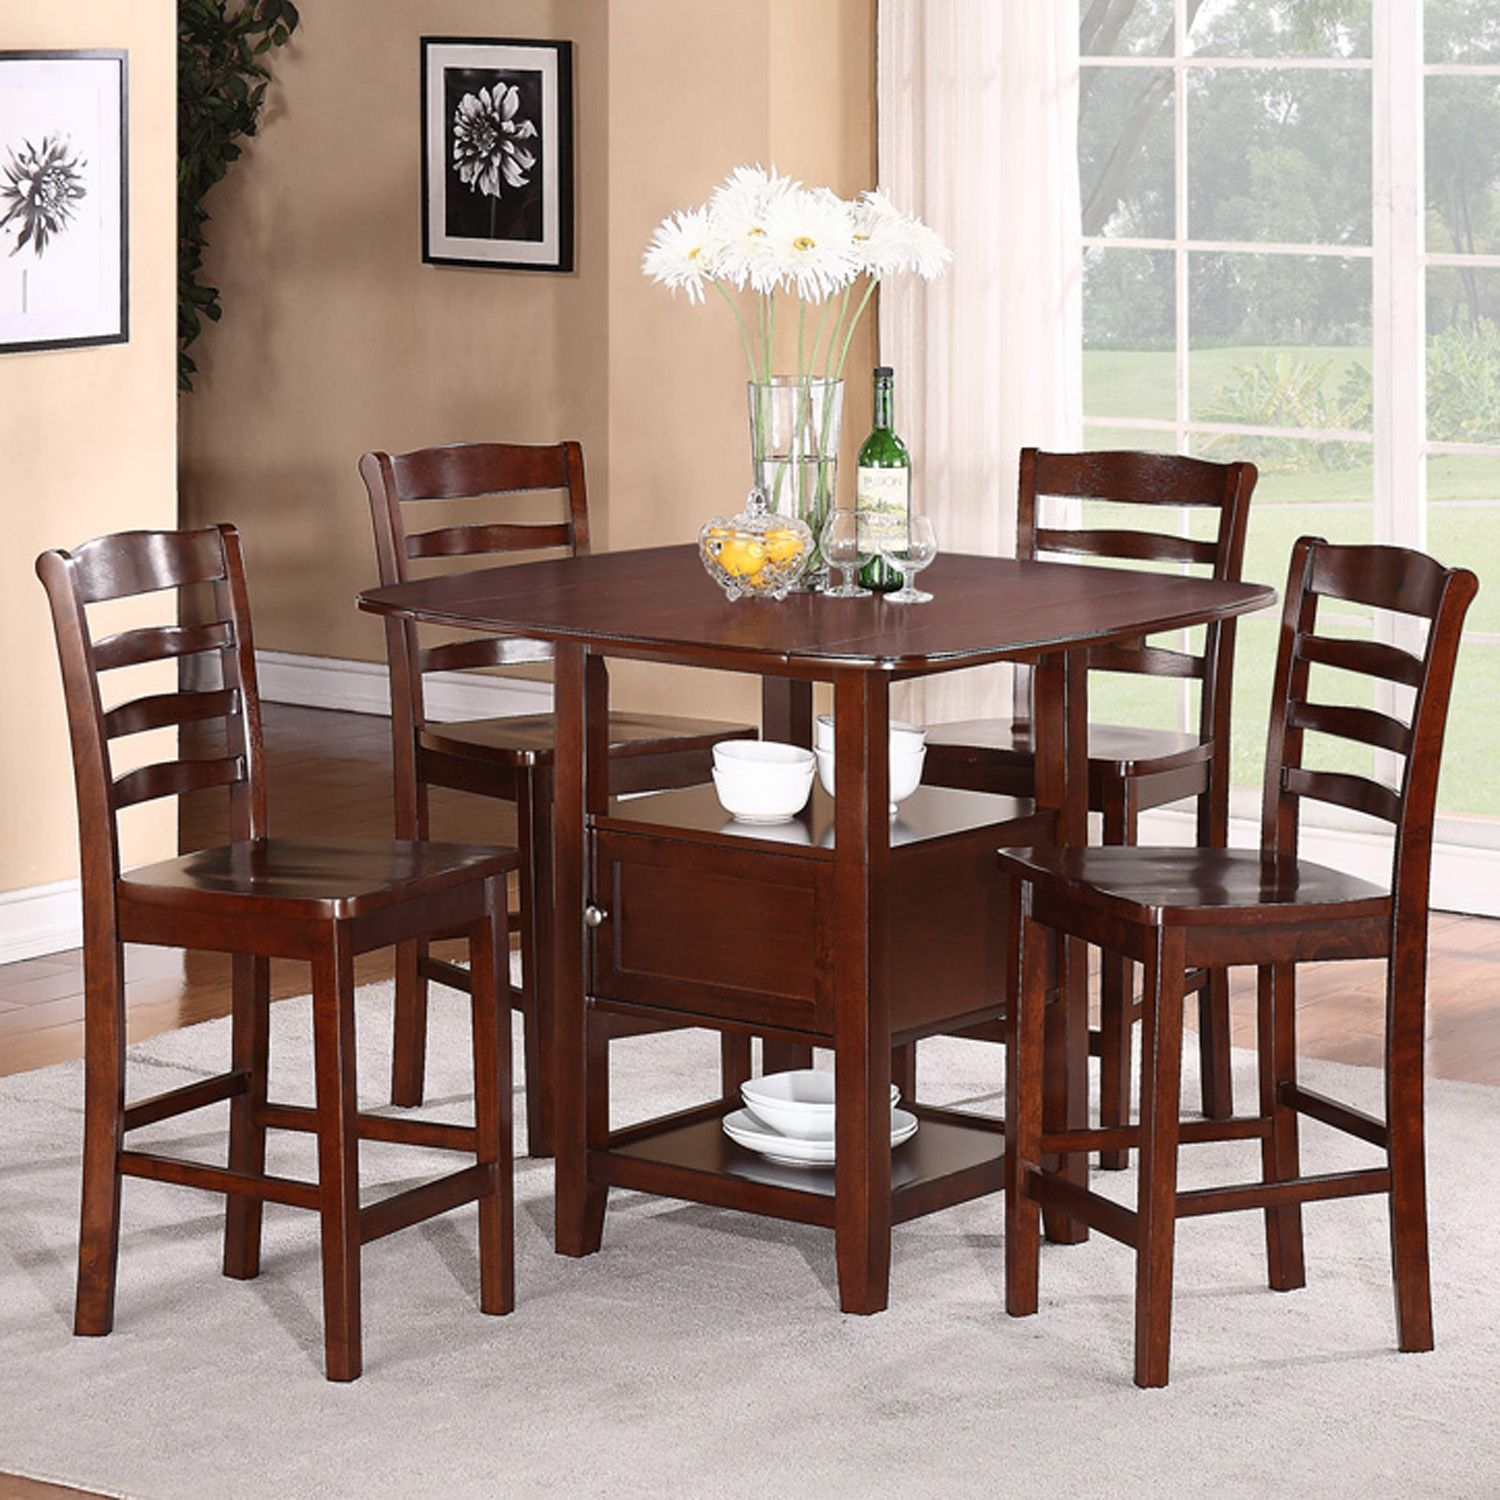 Dining Sets With Storage